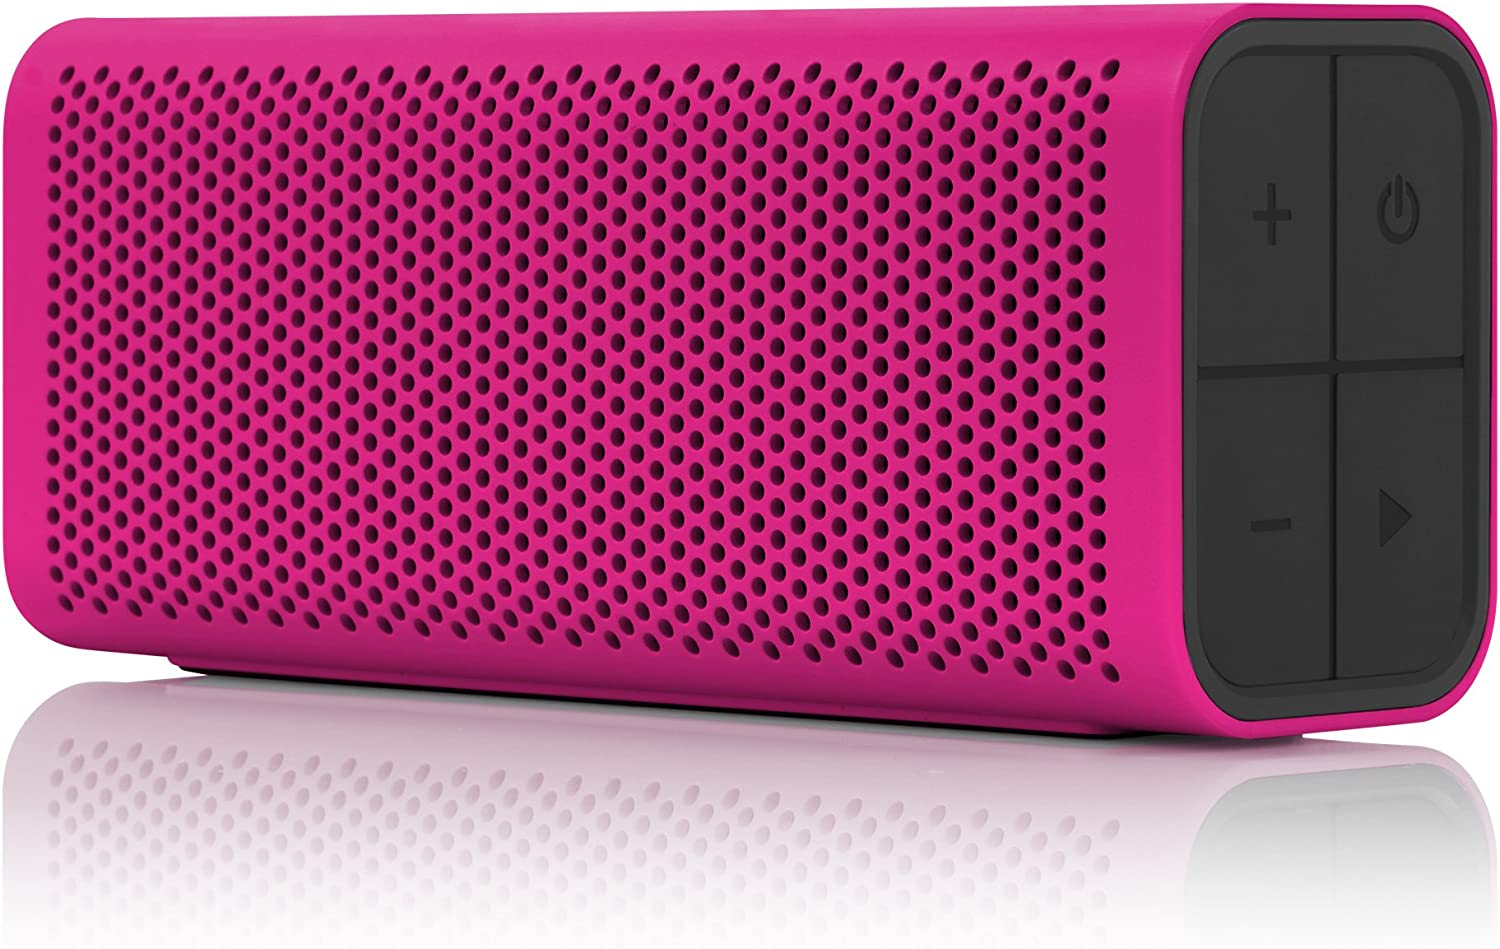 Braven B705MBP Portable Wireless Bluetooth Speaker [12 Hours][Water Resistant] Built-in 1400 mAh Power Bank Charger - Magenta